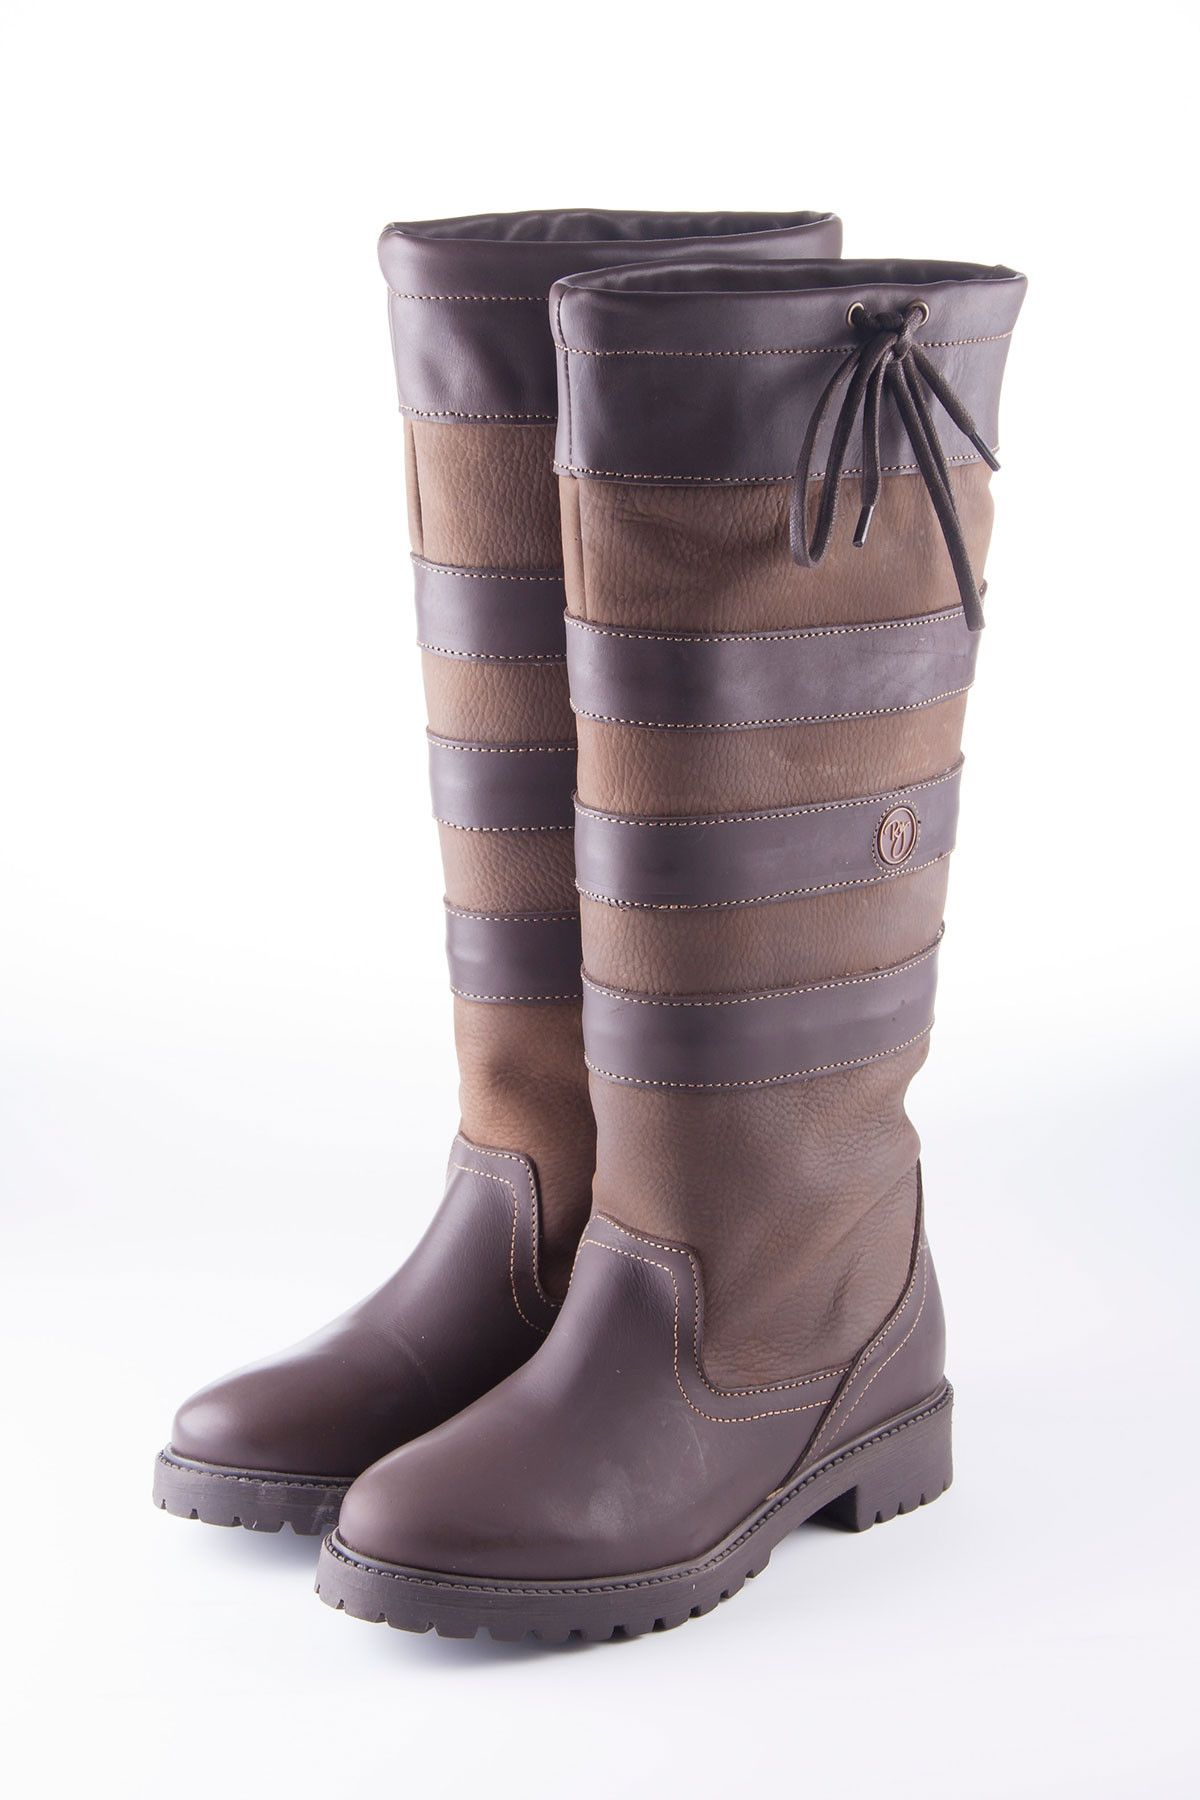 9a4f45df42408a Rydale Malham Classic 2016 Leather Boots